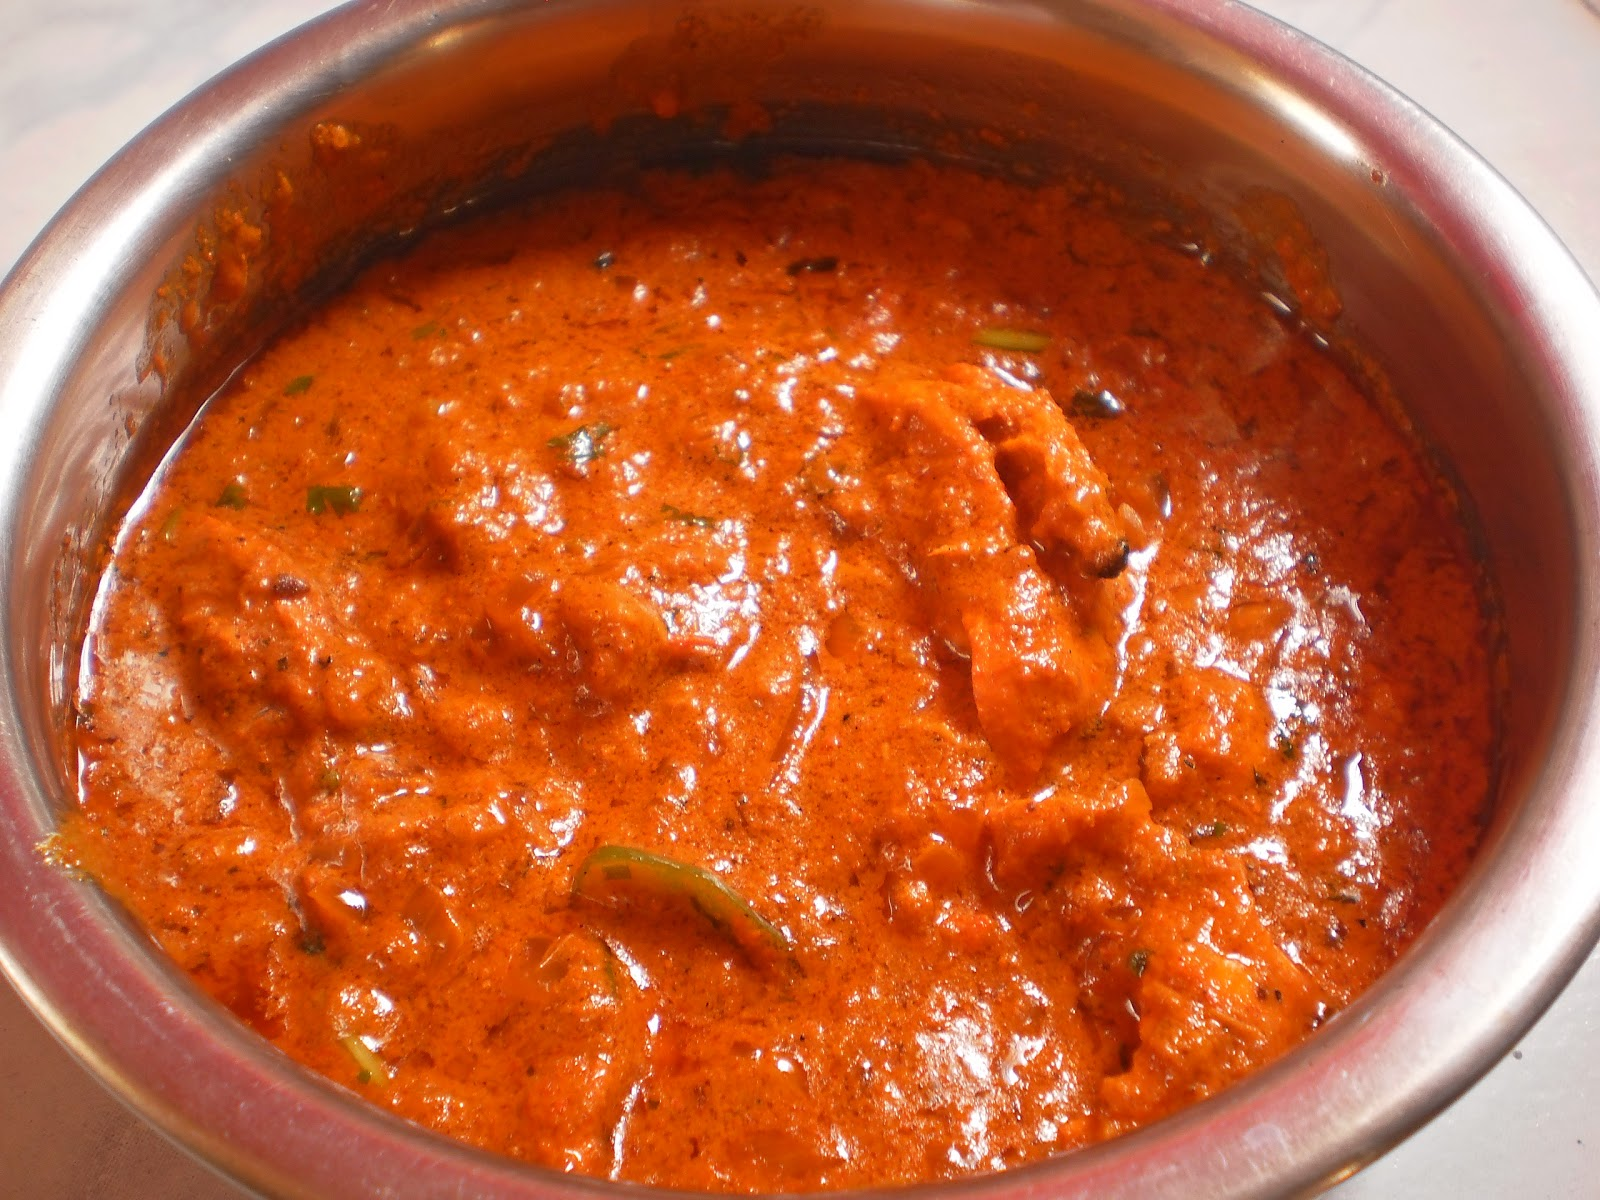 Butter chicken masalamurgh makhani recipe easyfud butter chicken masalamurgh makhani recipe forumfinder Image collections